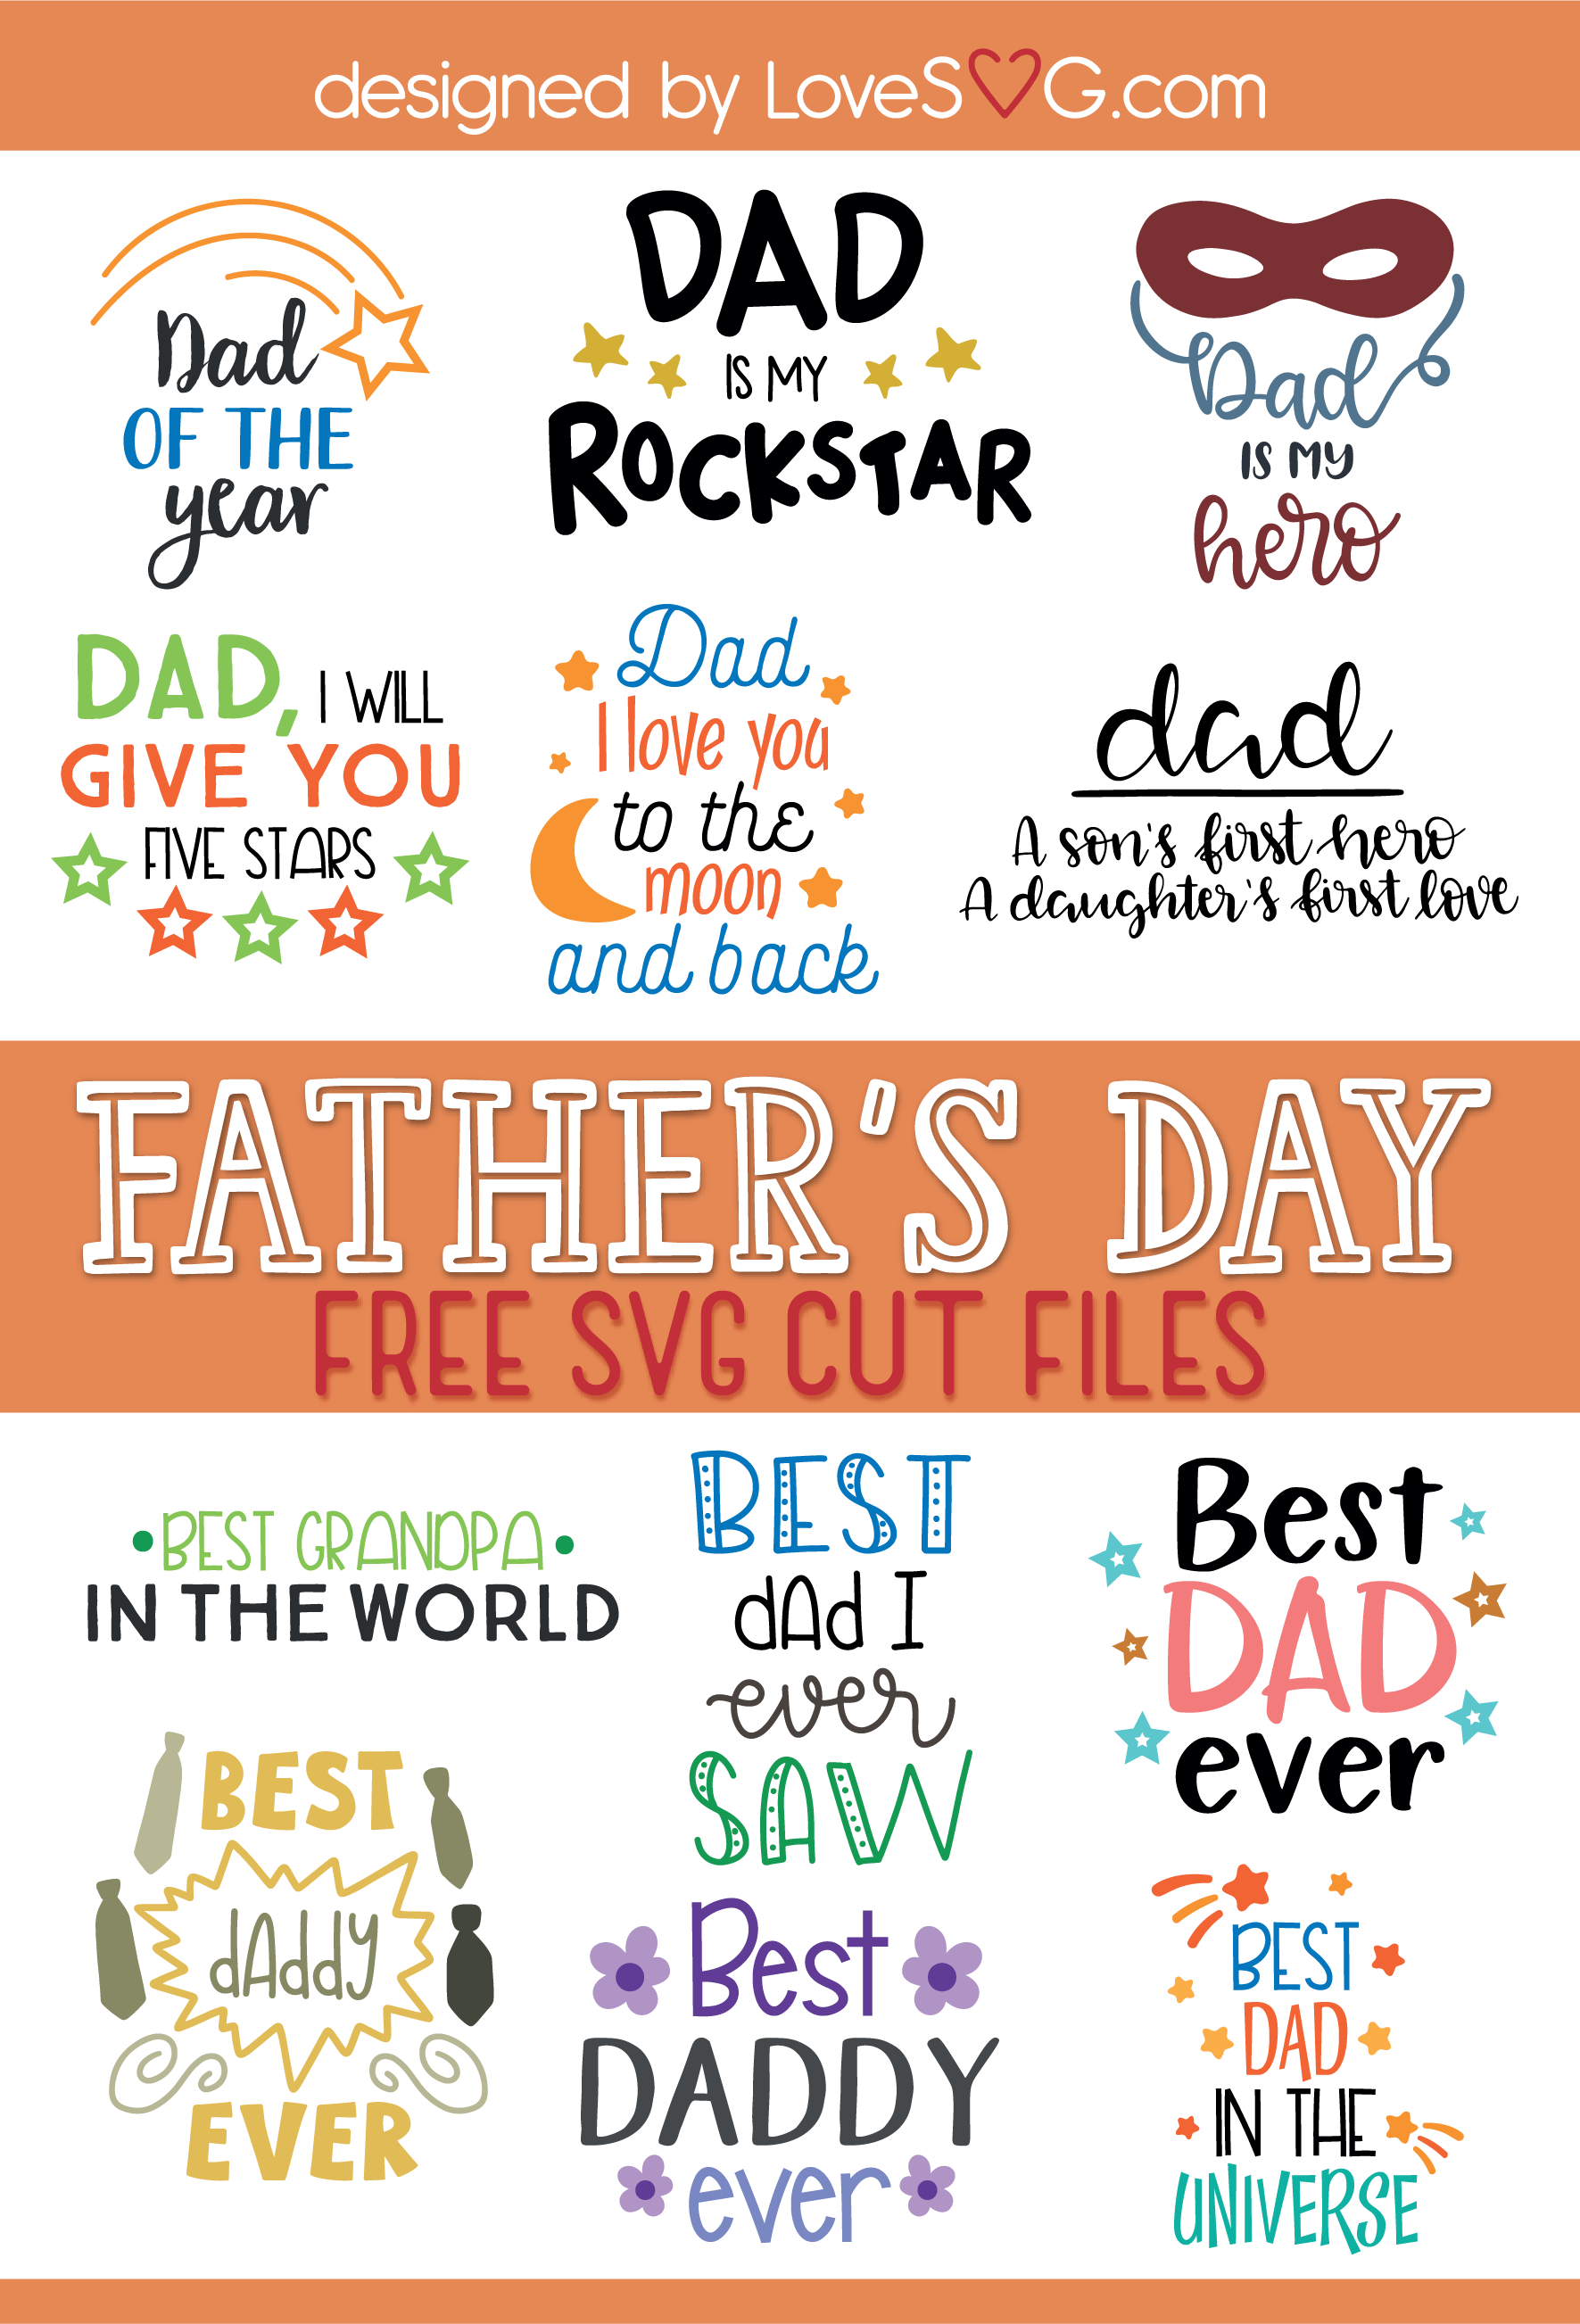 Free Free svg daddy's little dude. Interiordesignideas Interiordesignlivingroom Interiordesignbedroom Interiordesign Interiordesignkitchen Cricut Free Cricut Projects Beginner Fathers Day SVG, PNG, EPS, DXF File